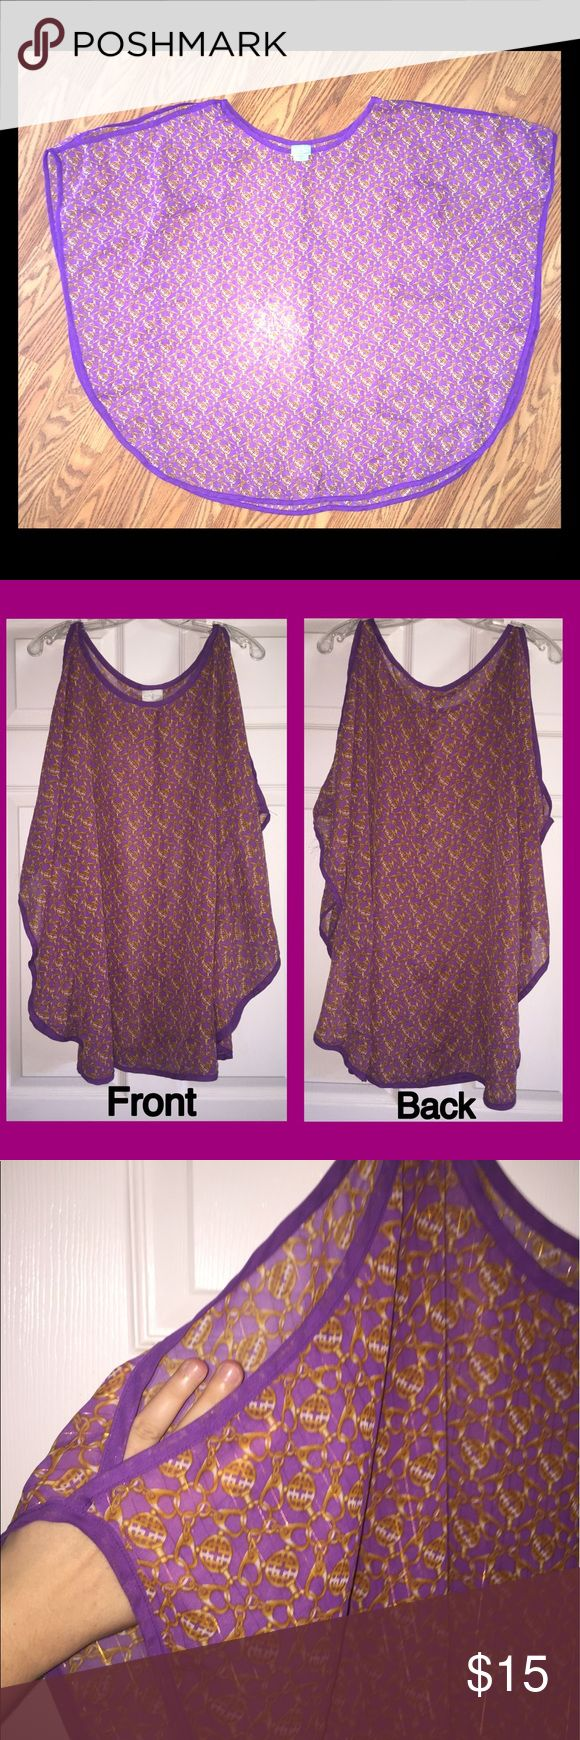 Jaclyn Smith Coverup Only worn once!  Beautiful purple swimsuit coverup perfect for a day spent at the beach or lake! Made by Jaclyn Smith. The shoulders are cut out which gives it an extra flowy look when worn! Bundle 3 or more items and save 15%!!! Jaclyn Smith Swim Coverups